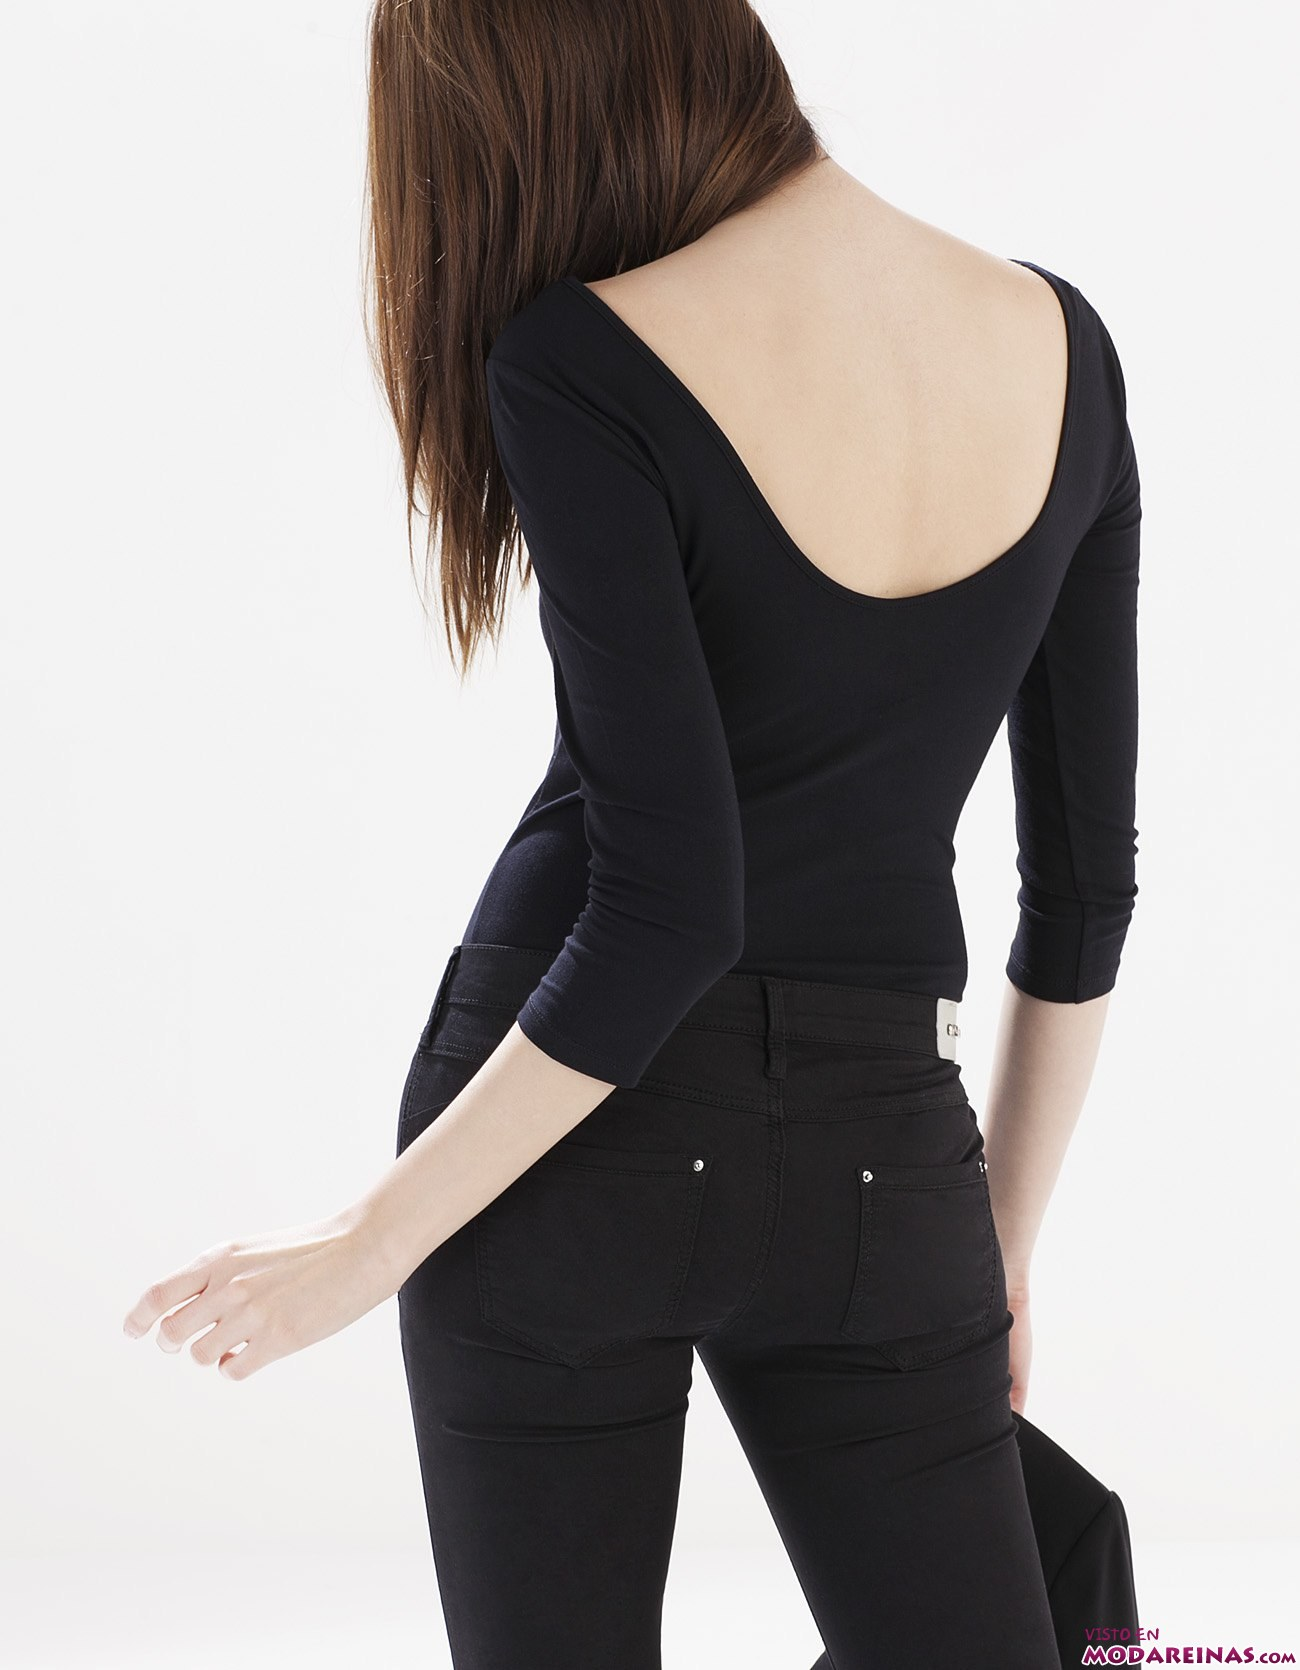 body de stradivarius en color negro